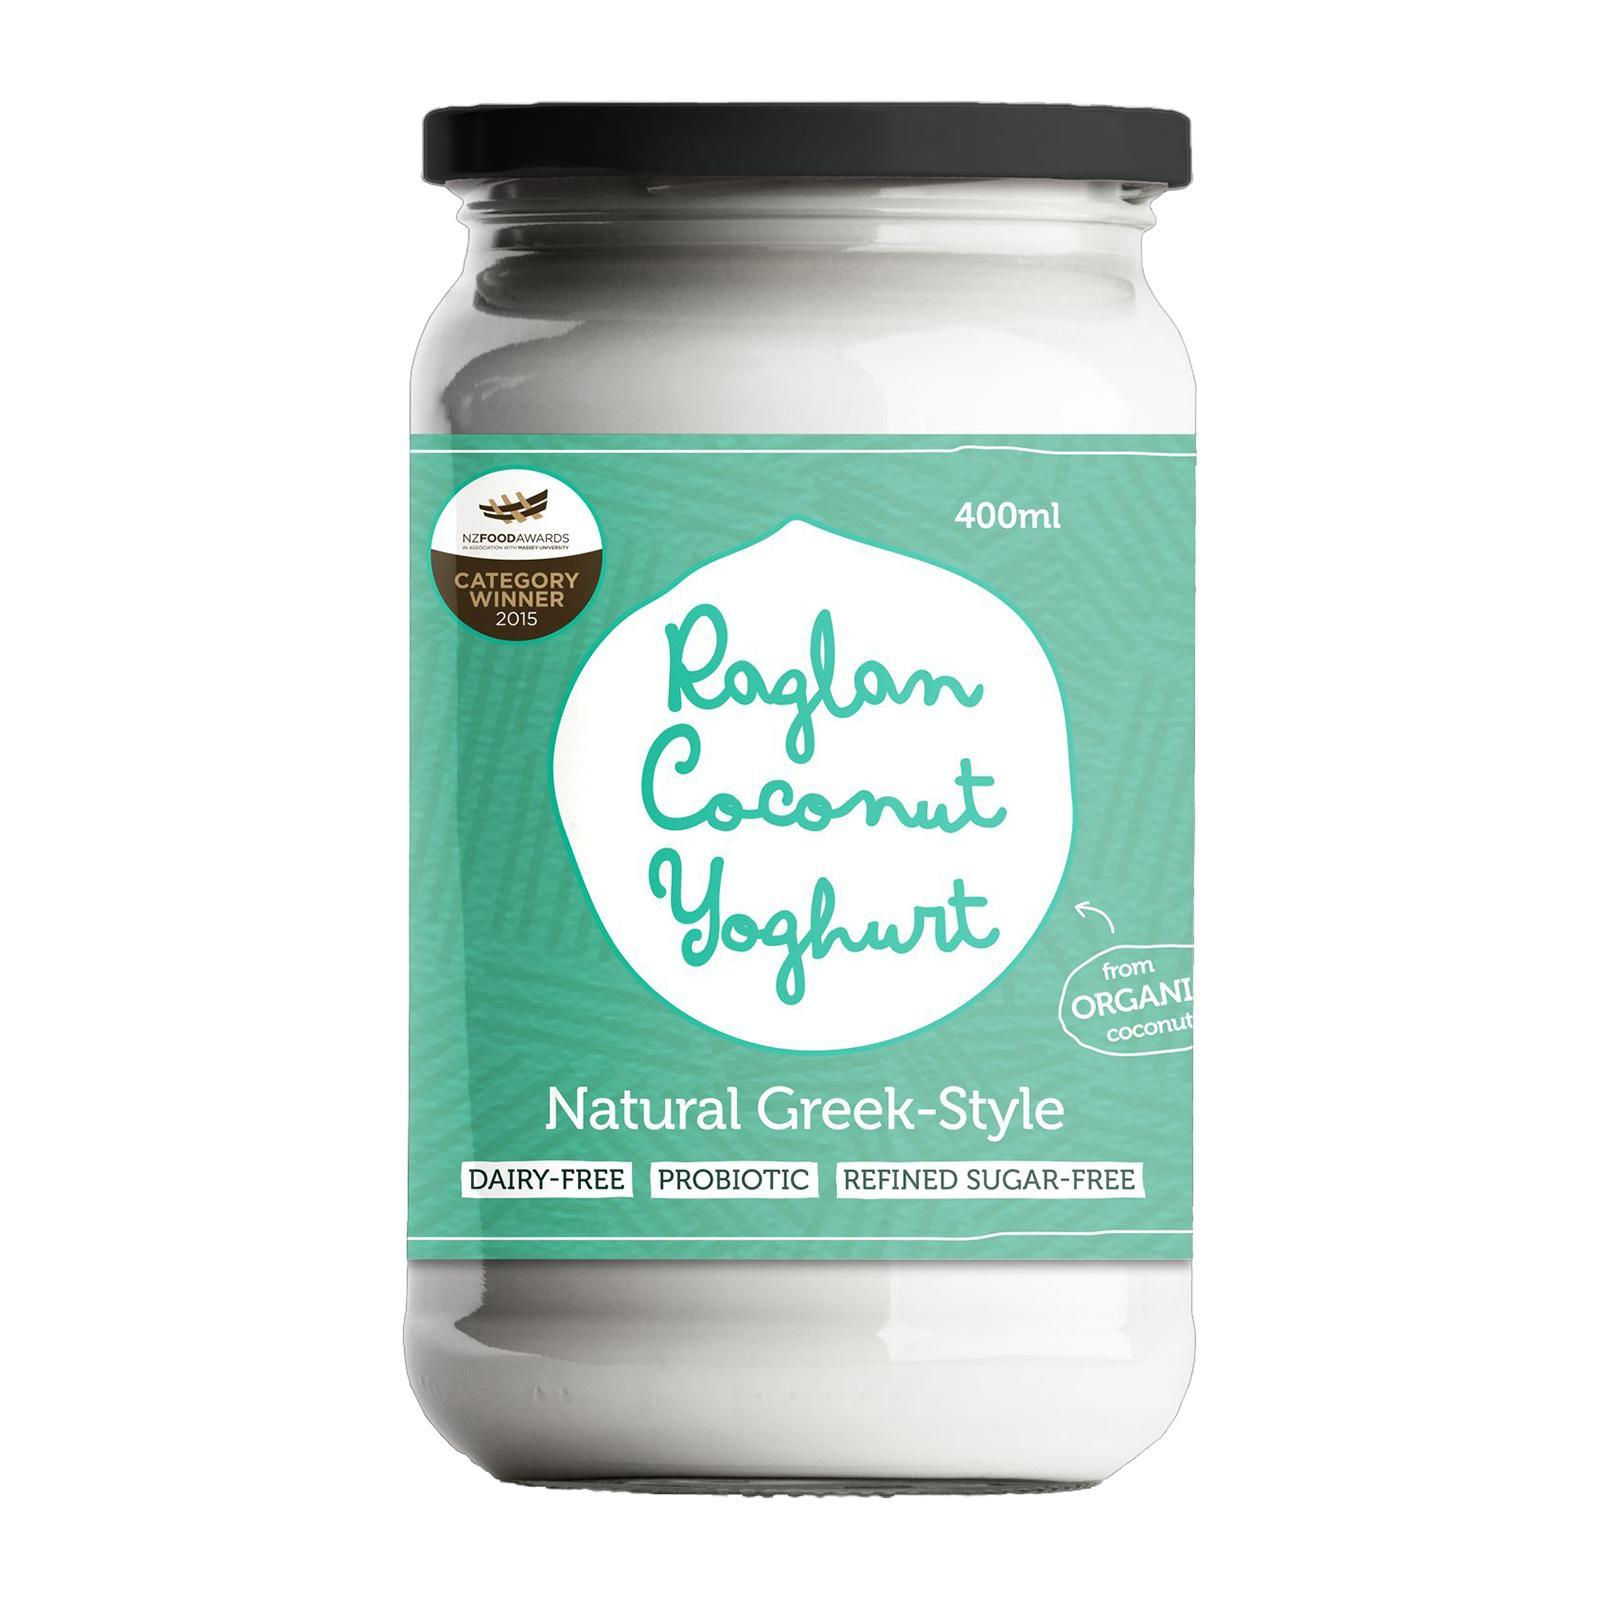 Raglan Coconut Yoghurt Natural Greek Style - 400Ml